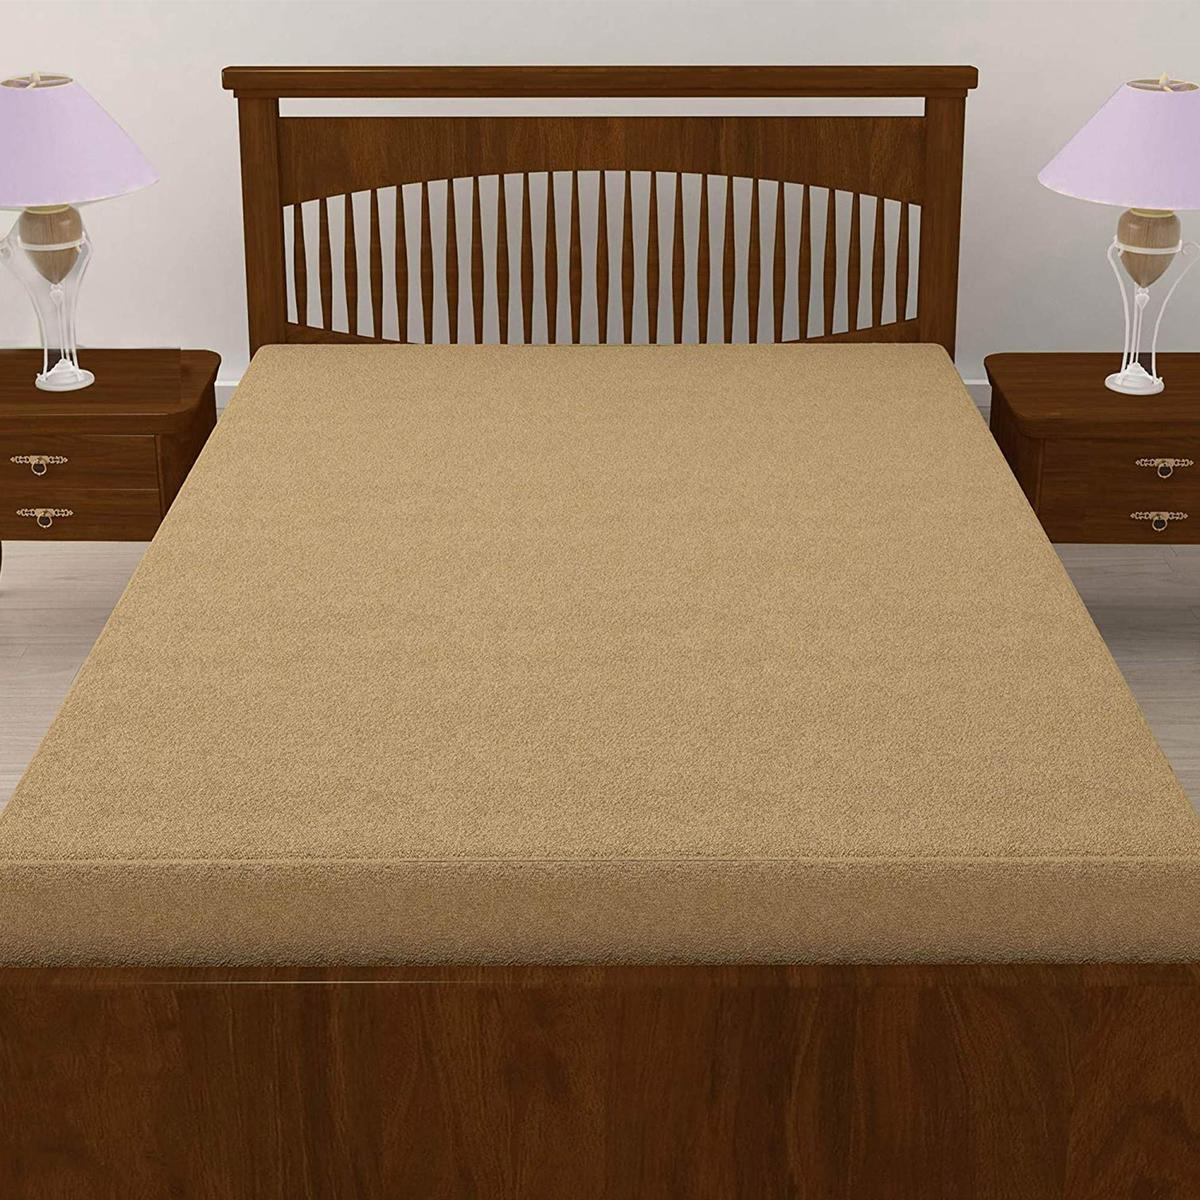 eCraftIndia - 100% Waterproof Terry Cotton Fitted Mattress Protector for King Size Bed (78 x 72 Inch, Beige)